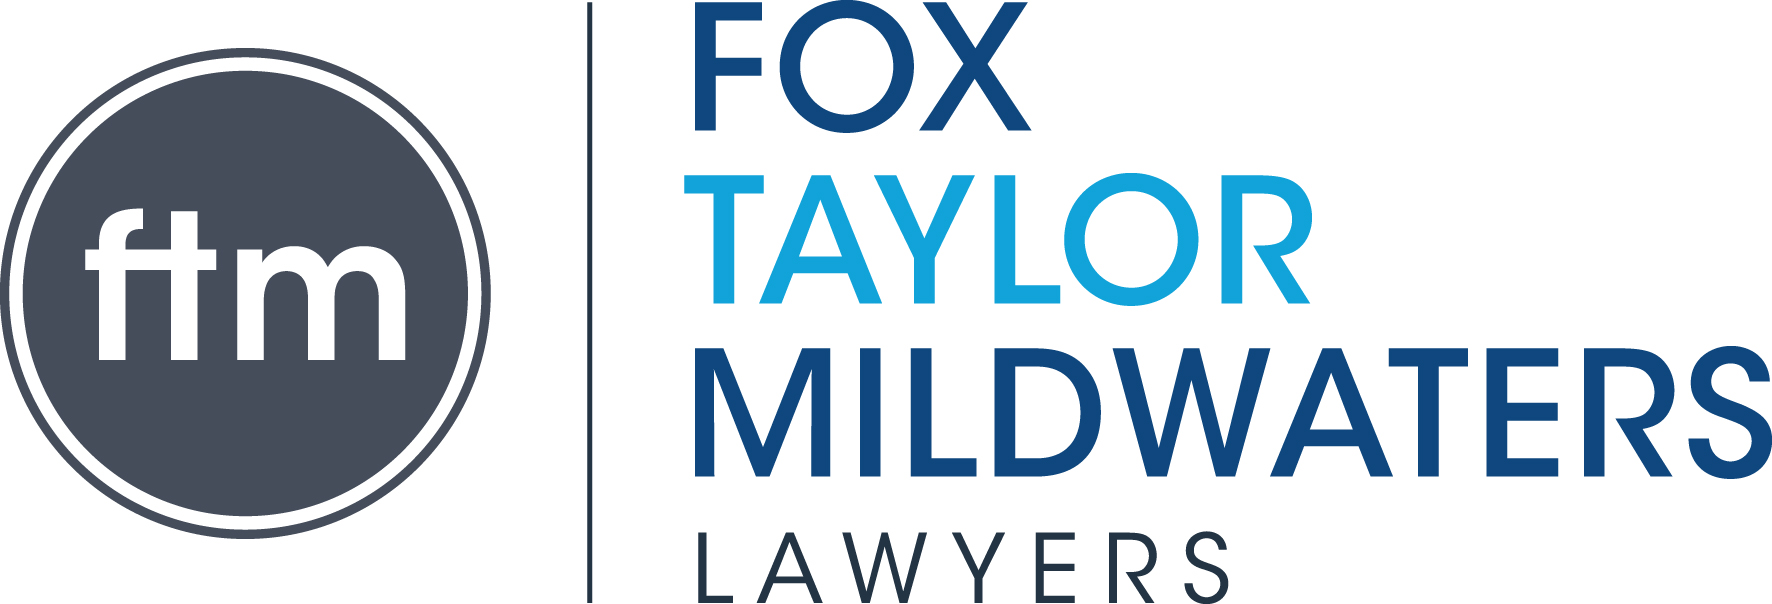 Fox Taylor Mildwater Lawyers